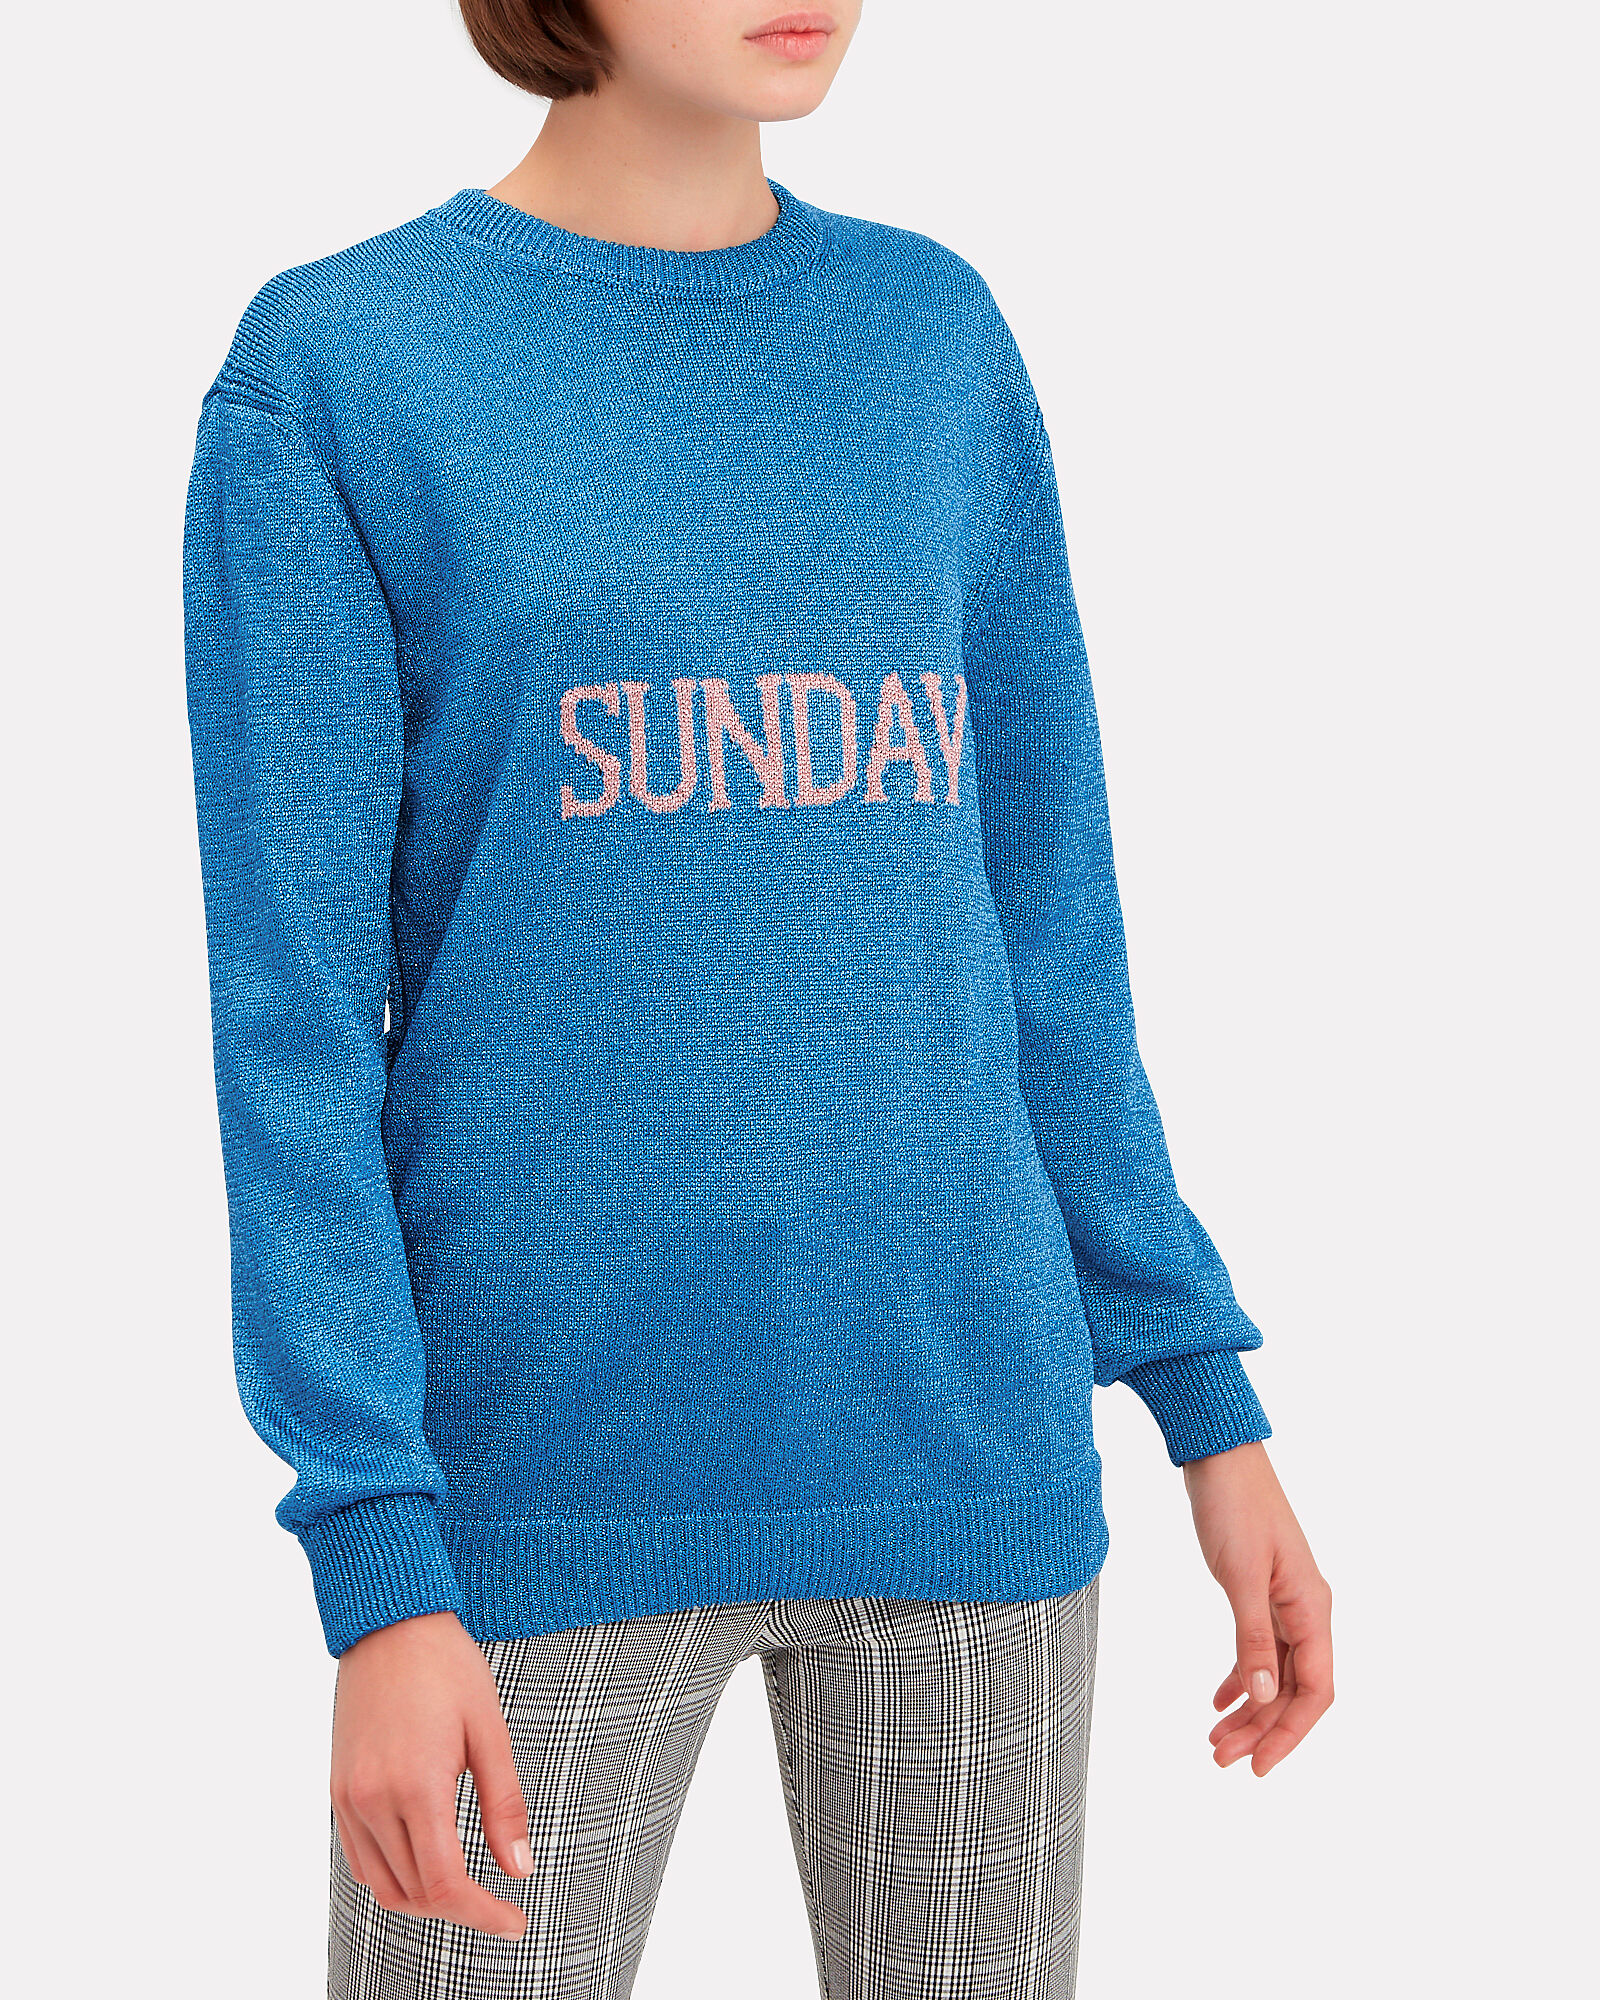 Sunday Sweater, BLUE-MED, hi-res